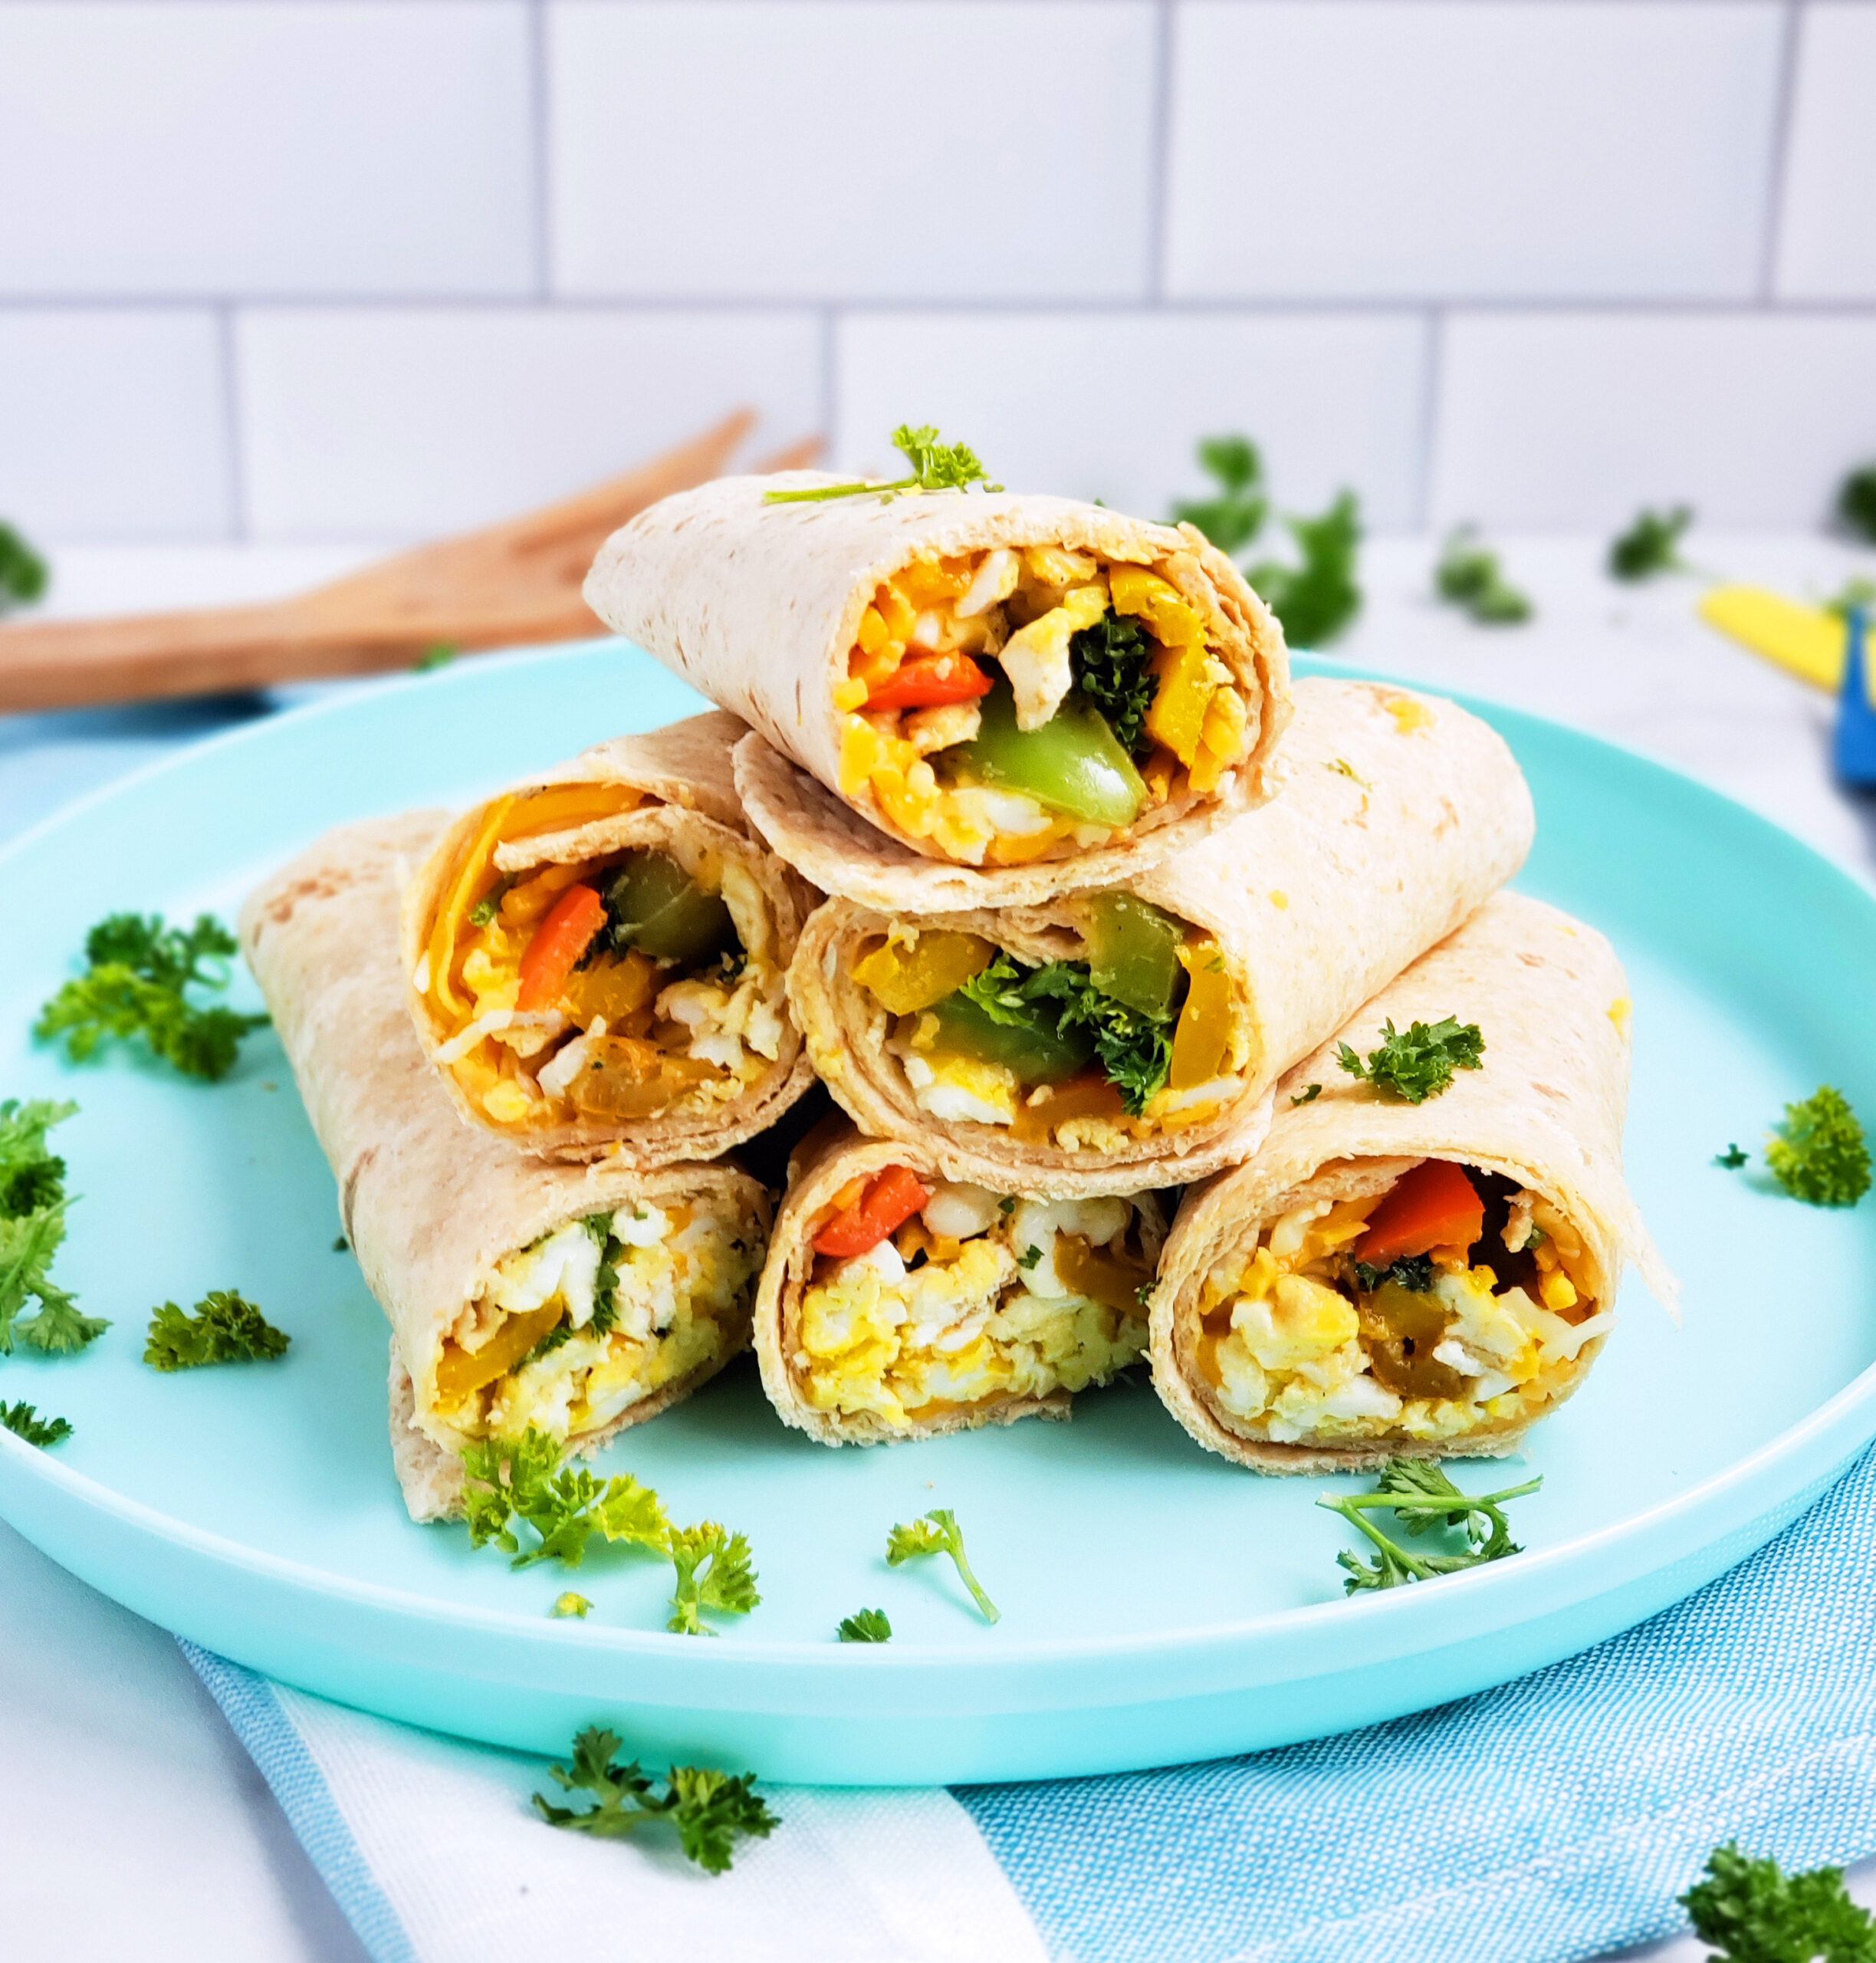 Cheesy Veggie & Egg Breakfast Roll-Ups, the perfect kid-approved, toddler-approved meal. #healthykids #kidsinthekitchen #breakfastwraps